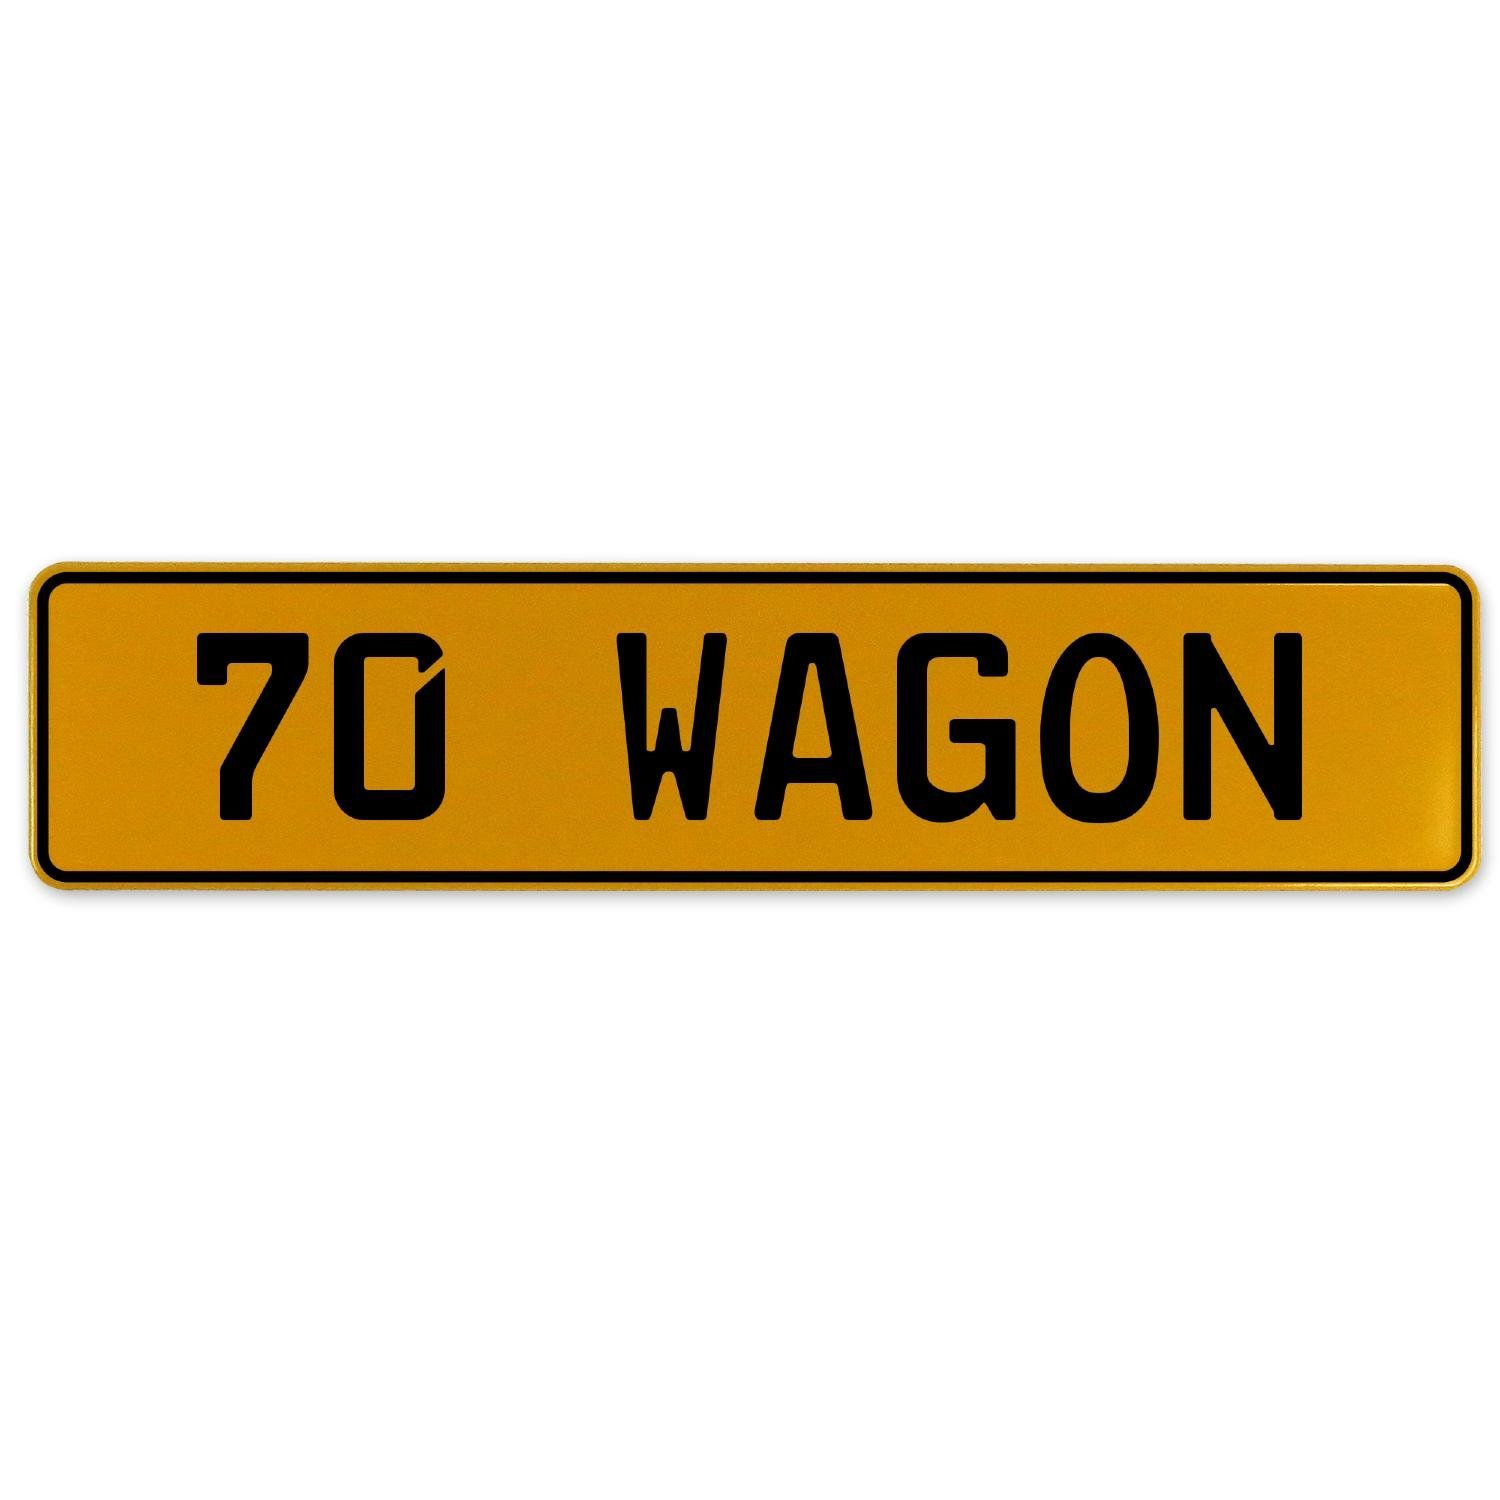 Vintage Parts 563281 70 Wagon Yellow Stamped Aluminum European Plate